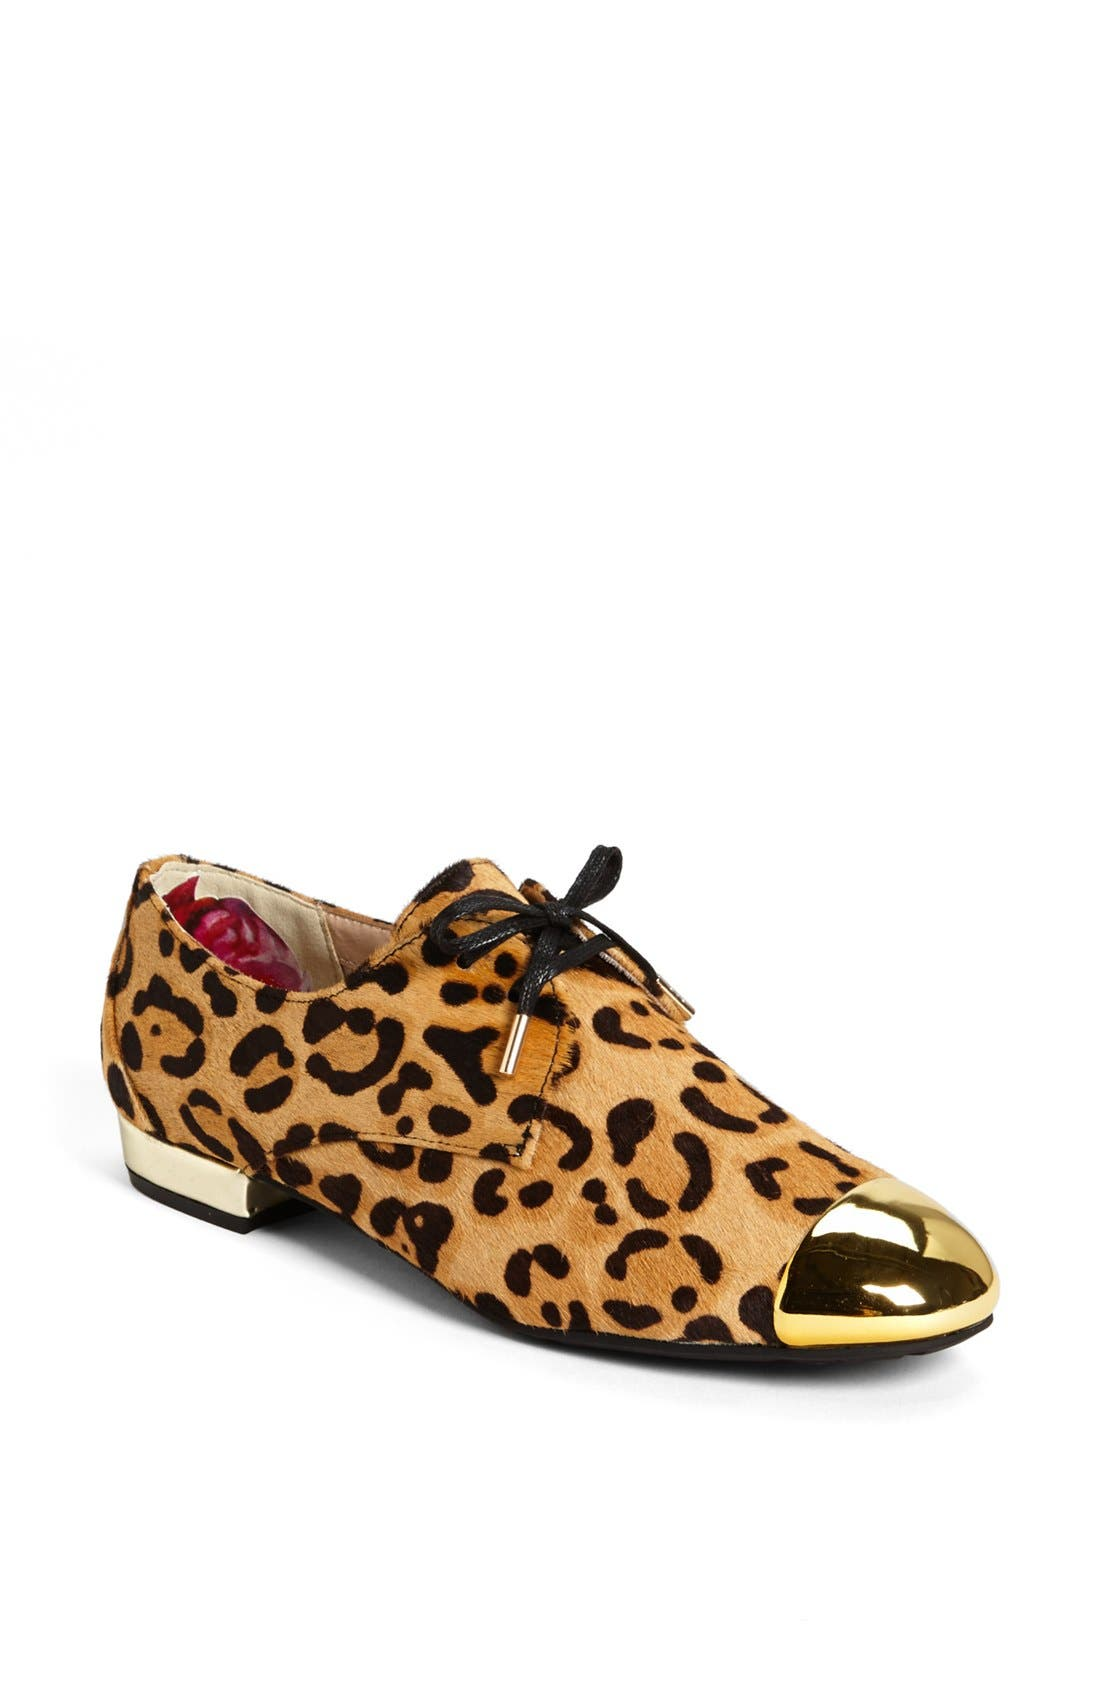 Main Image - Ted Baker London 'Kape 2' Genuine Calf Hair Flat